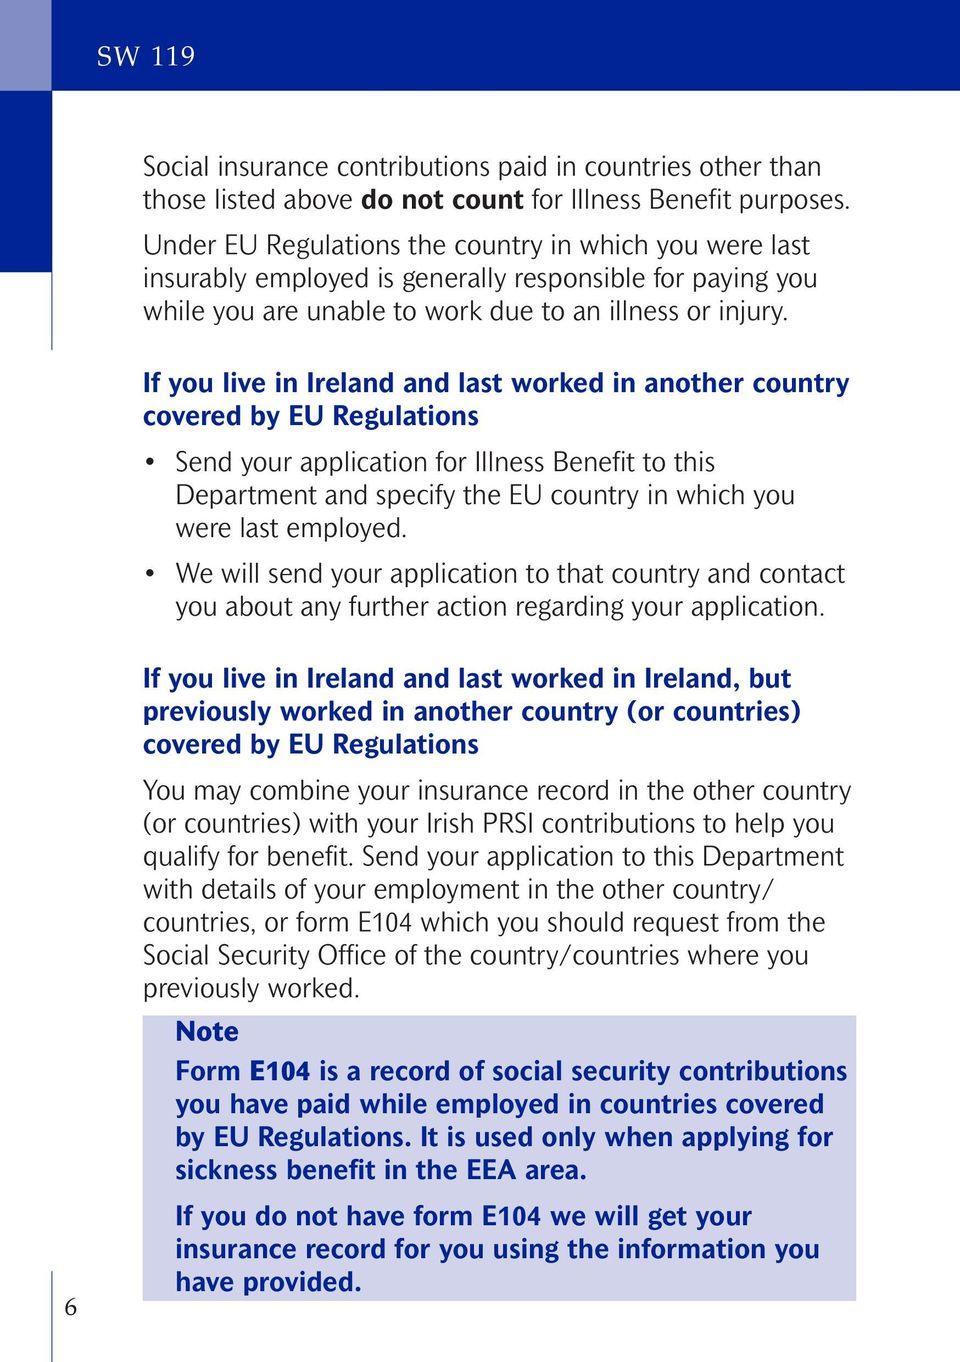 If you live in Ireland and last worked in another country covered by EU Regulations Send your application for Illness Benefit to this Department and specify the EU country in which you were last